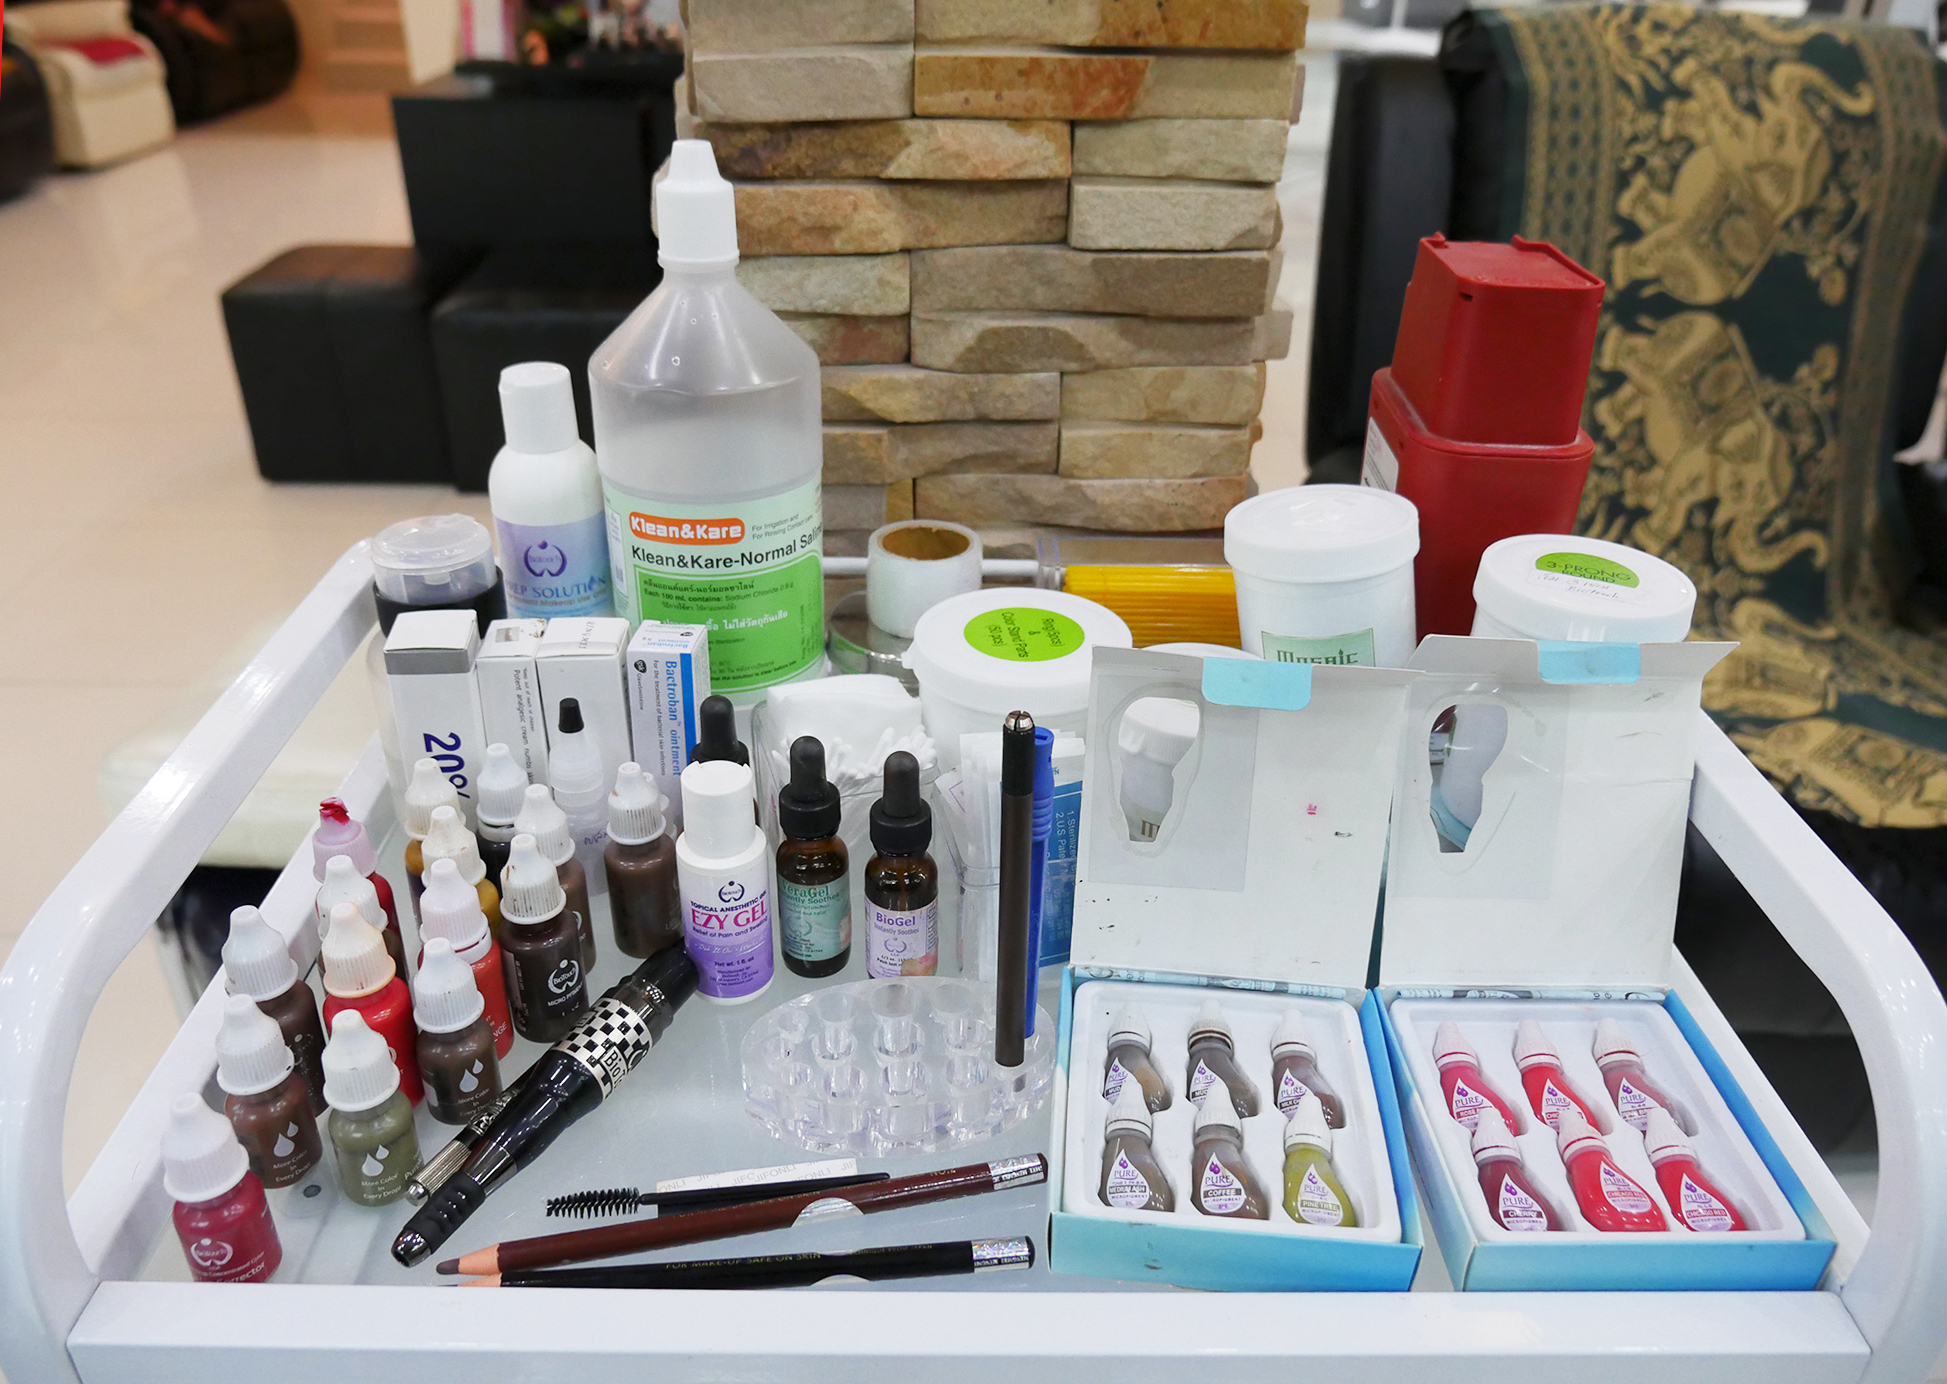 PERMANENT-MAKEUP-PRODUCTS